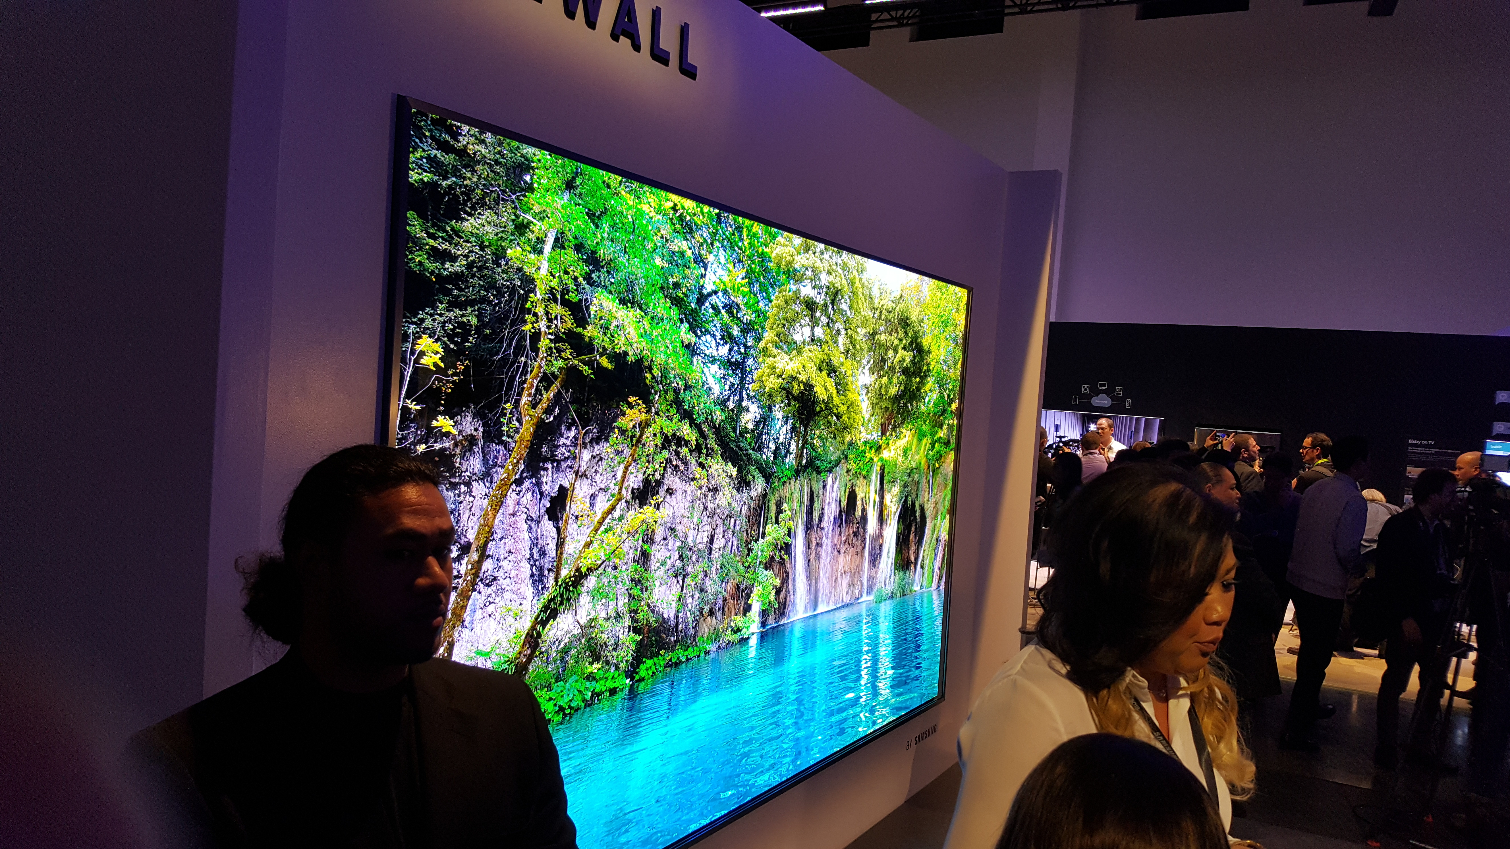 Samsung's Wild MicroLED Modular TV Grows to 146 Inches | Tom's Guide